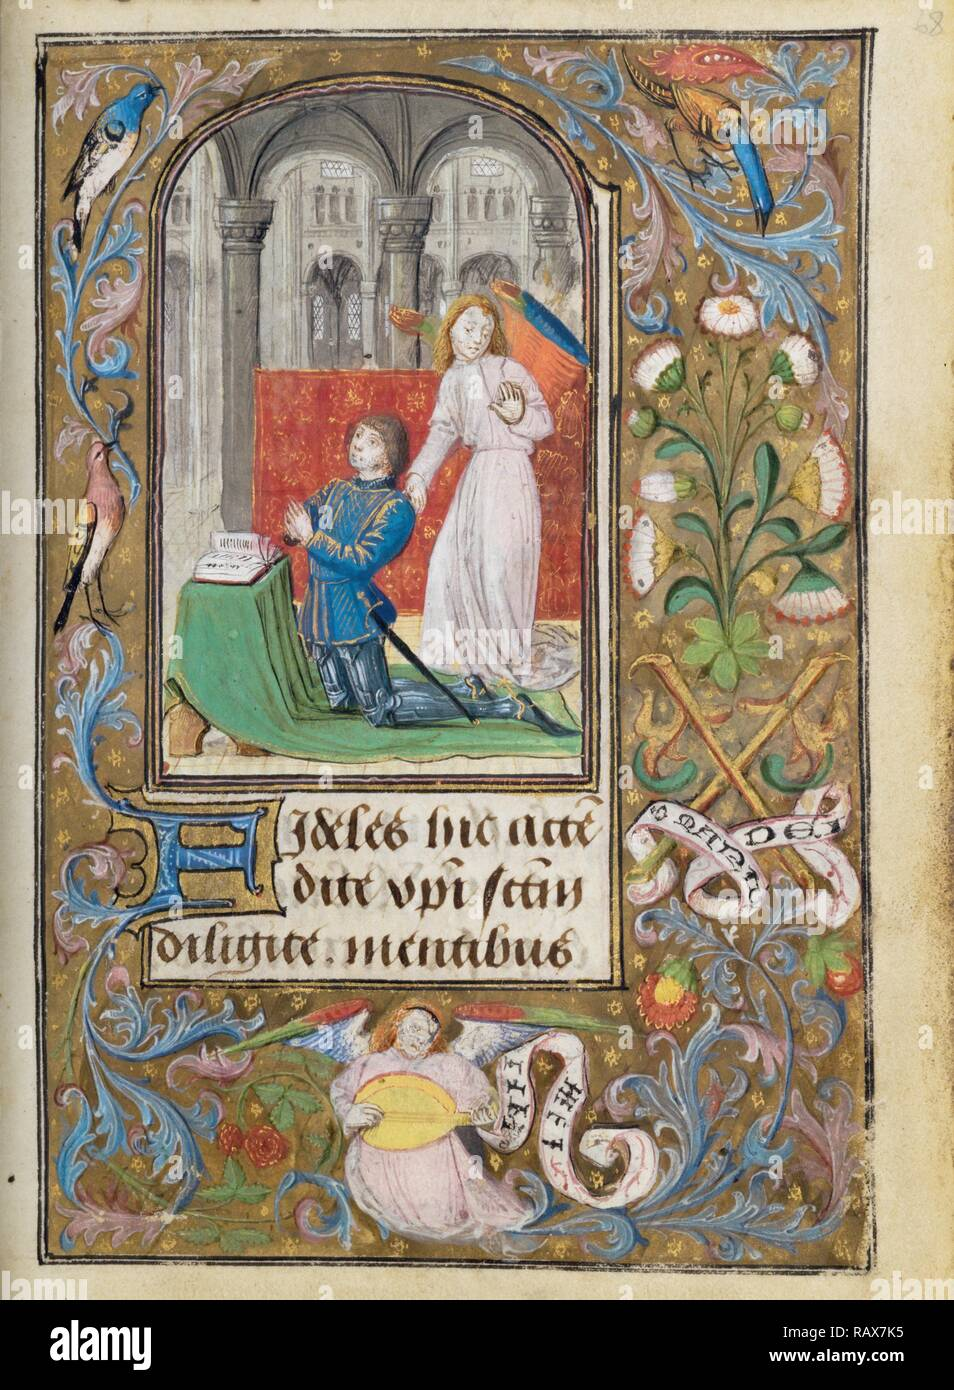 Charles the Bold Presented by an Angel, Lieven van Lathem, Flemish, about 1430 - 1493, active 1454 - 1493, Ghent ( reimagined Stock Photo